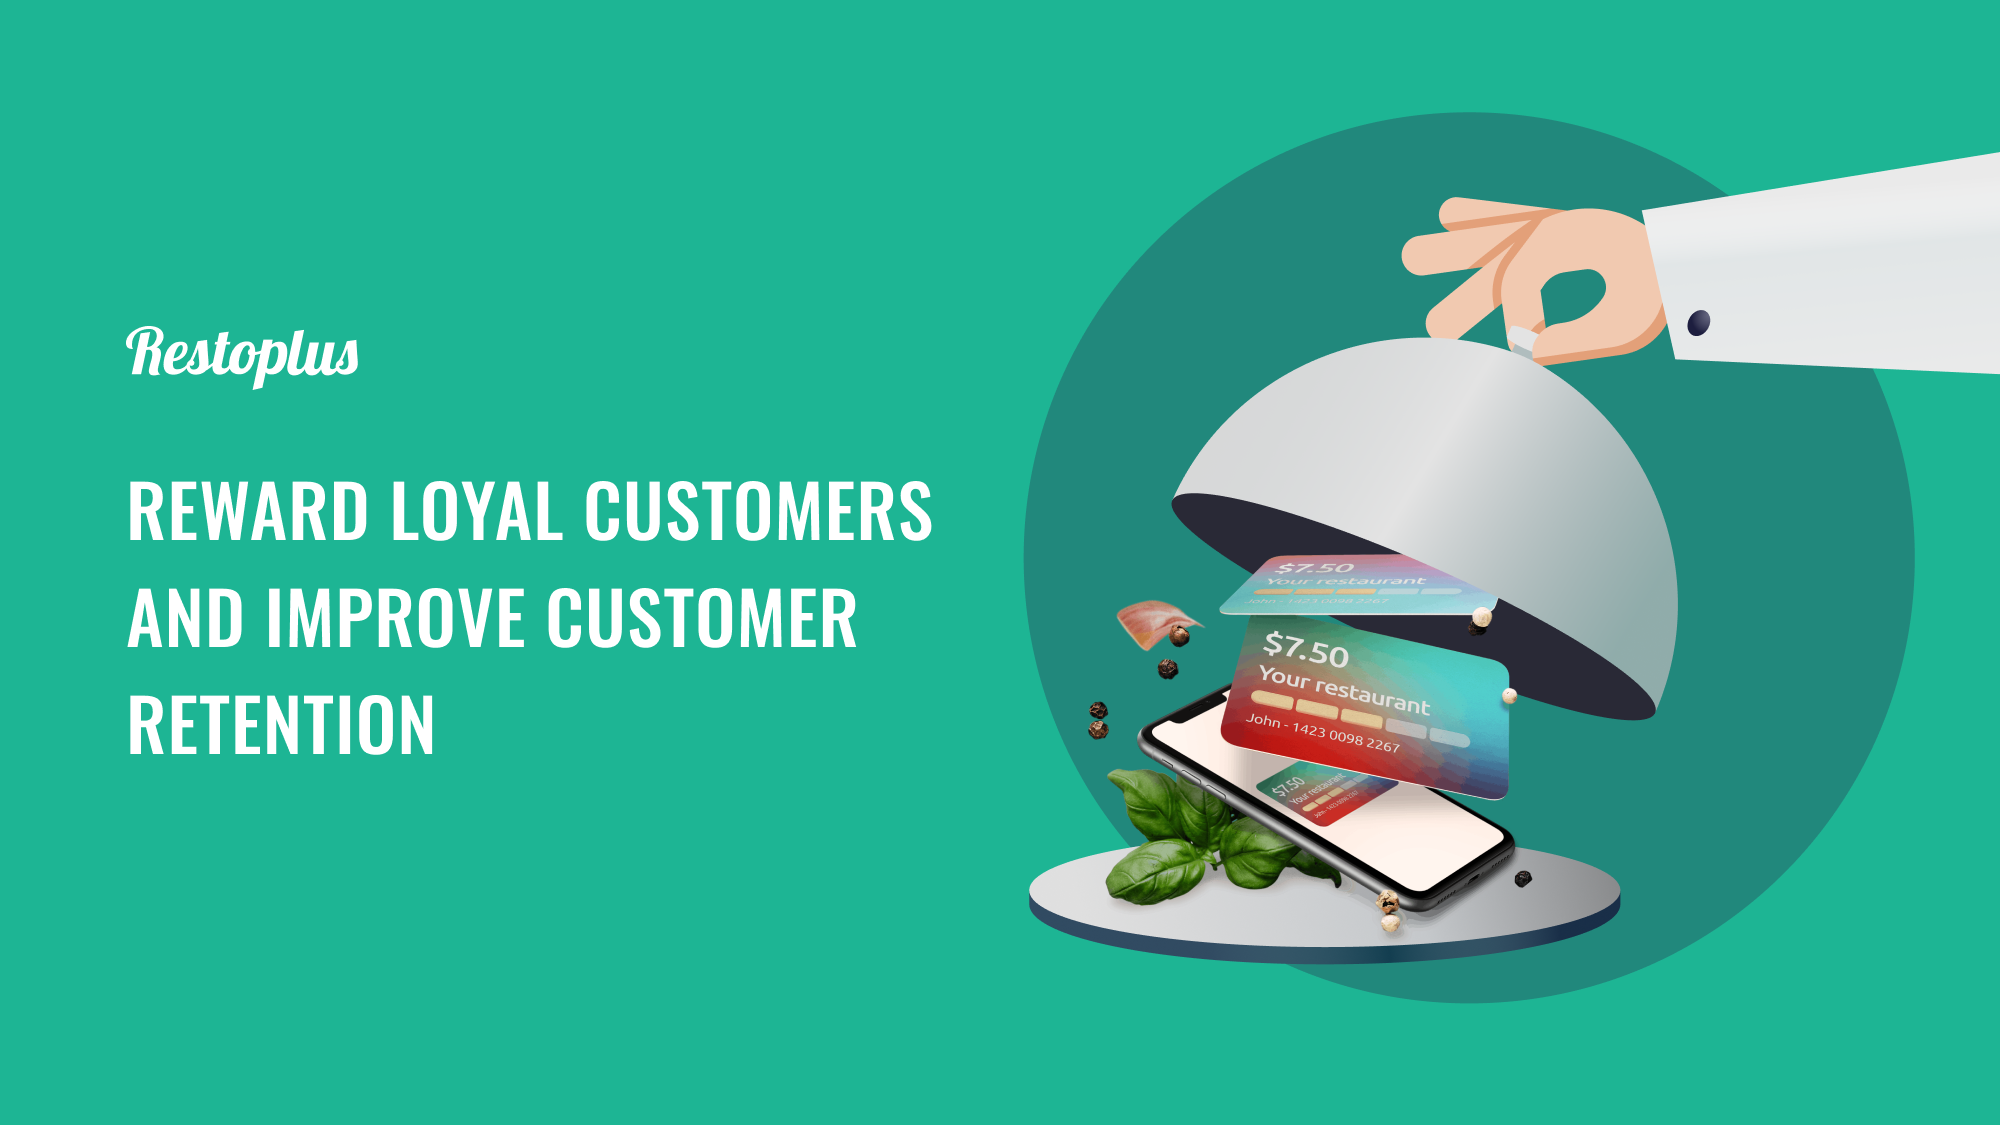 restoplus-marketing-tools-loyalty-programs-and-coupons